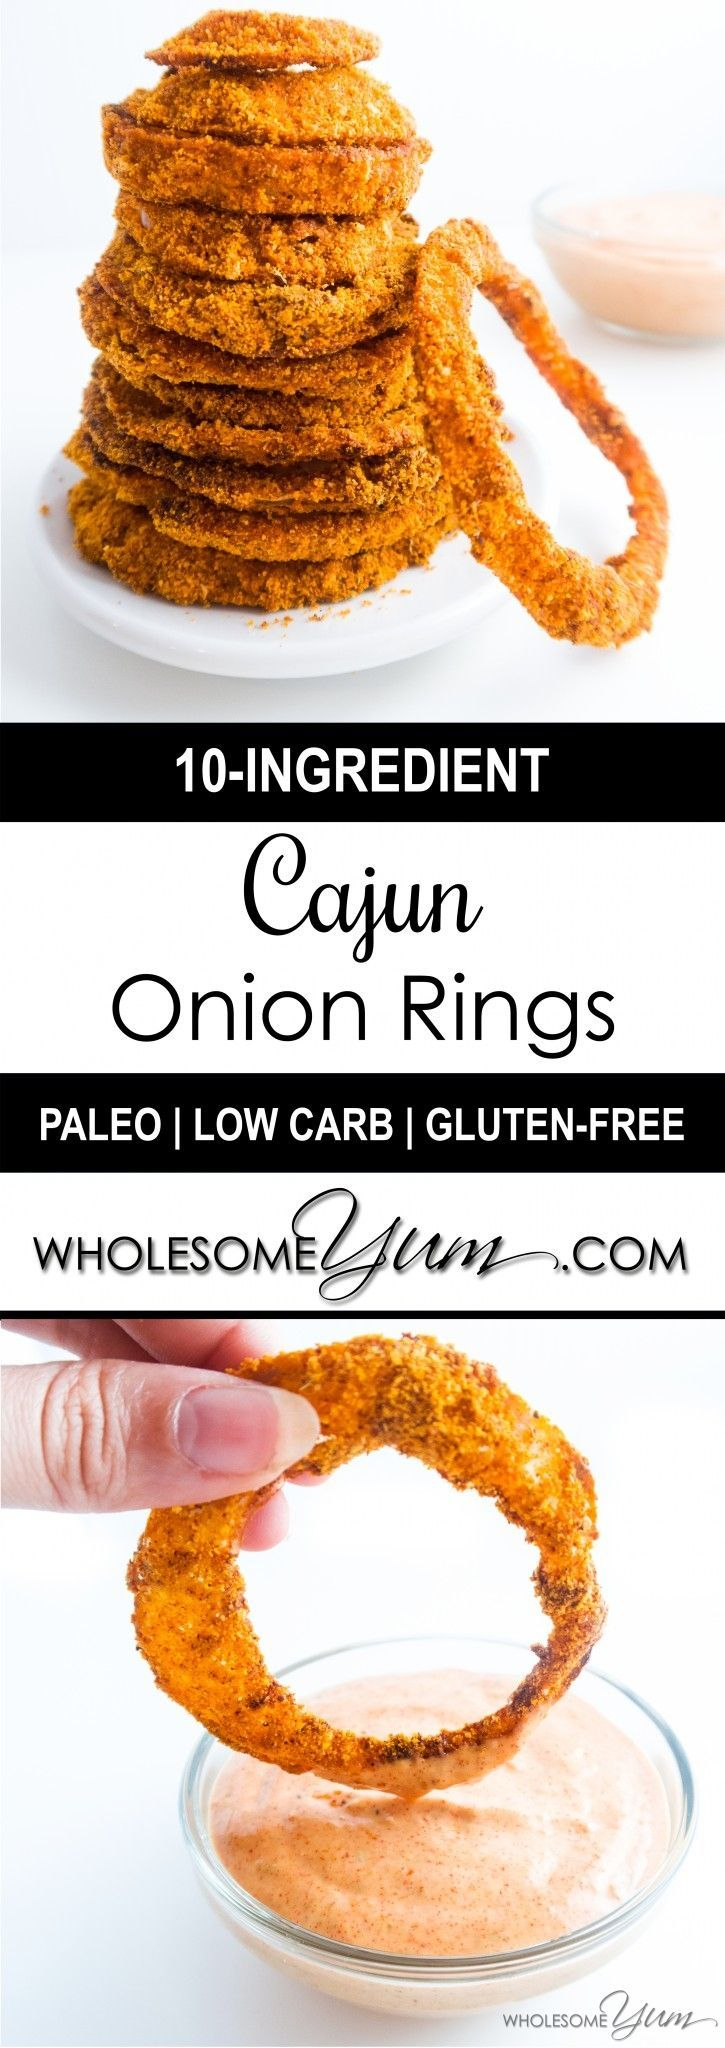 Cajun Onion Rings (Paleo, Low Carb) | Wholesome Yum - Natural, gluten-free, low…